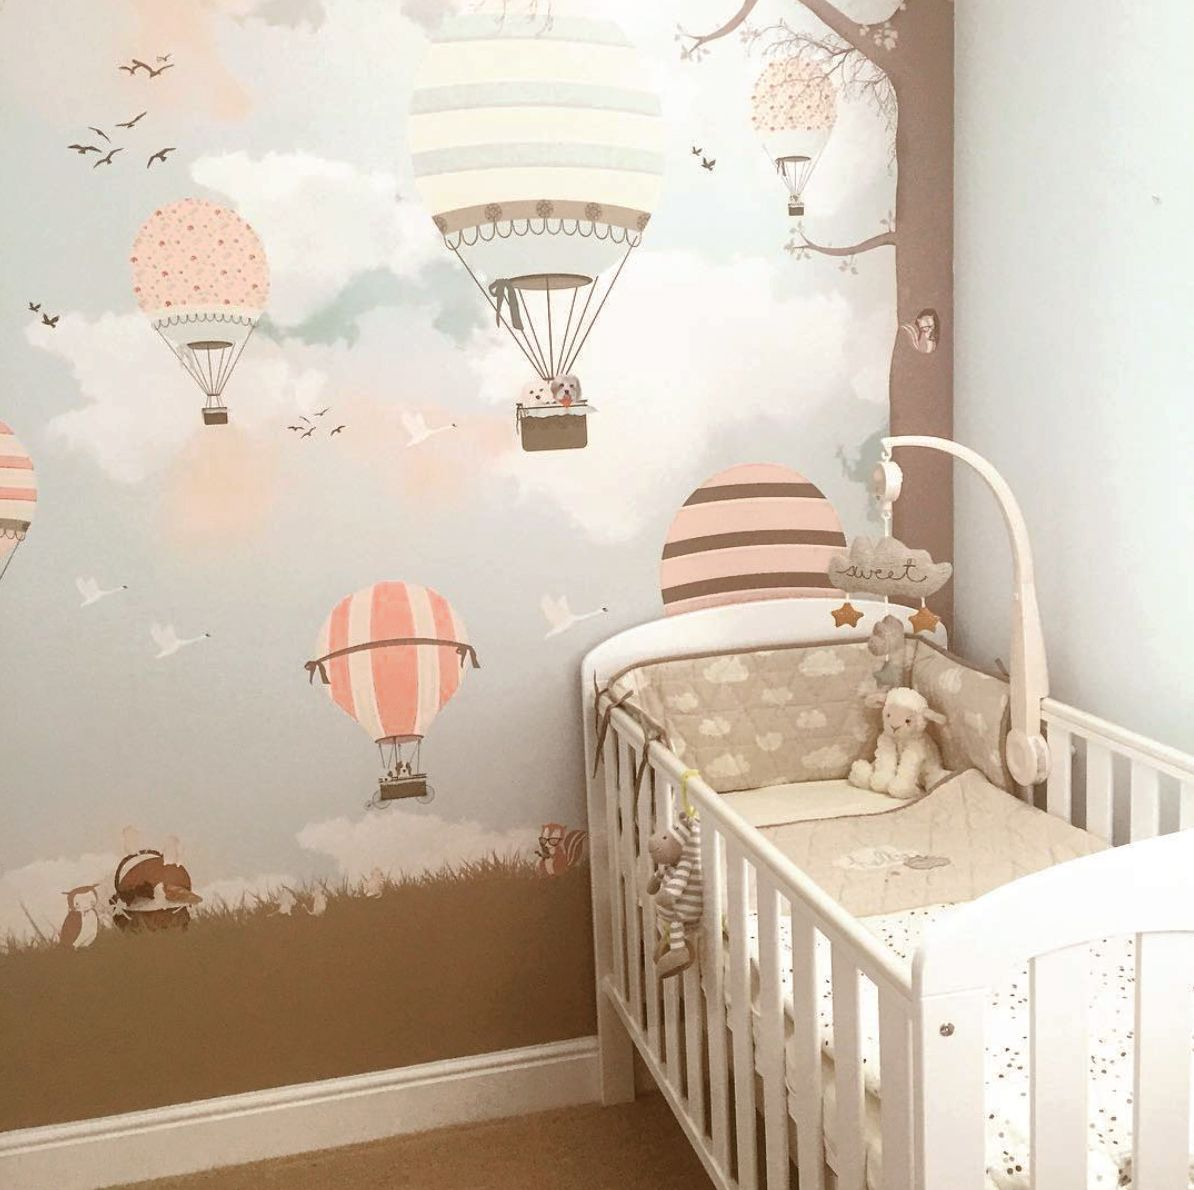 Little Hands Wallpaper You Just Need To Send Us The Exact Measure Of Your Wall Baby Wallpaper Little Hands Wallpaper Personalized Wallpaper How to measure how much wallpaper you